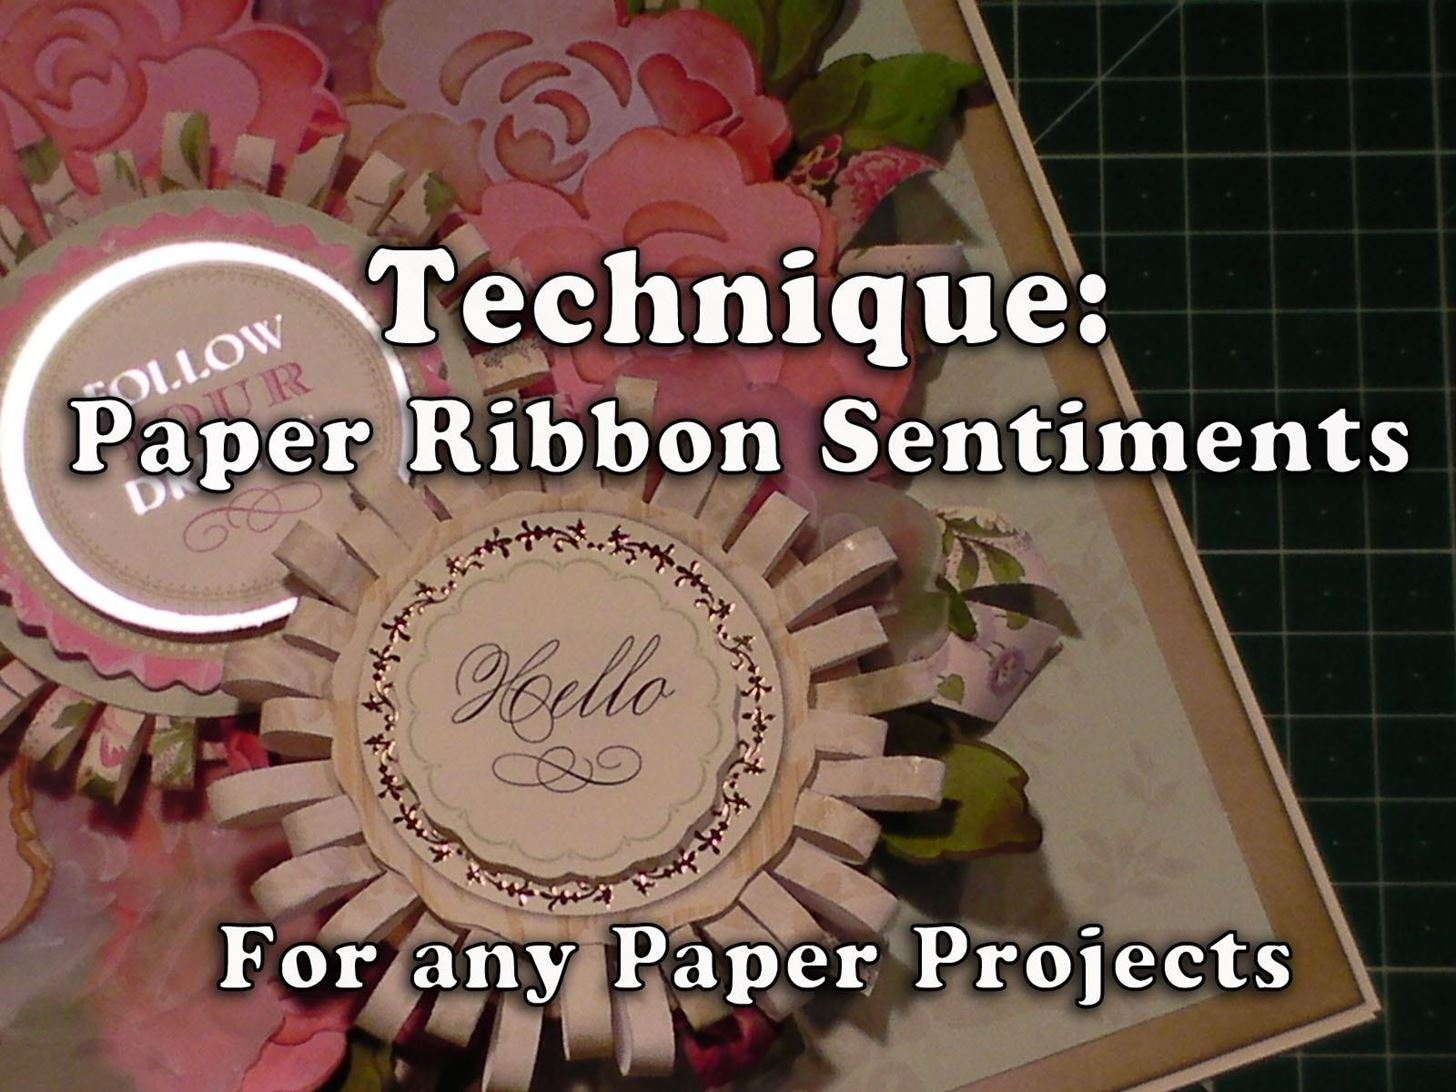 How to Make Pretty Paper Ribbon Sentiments